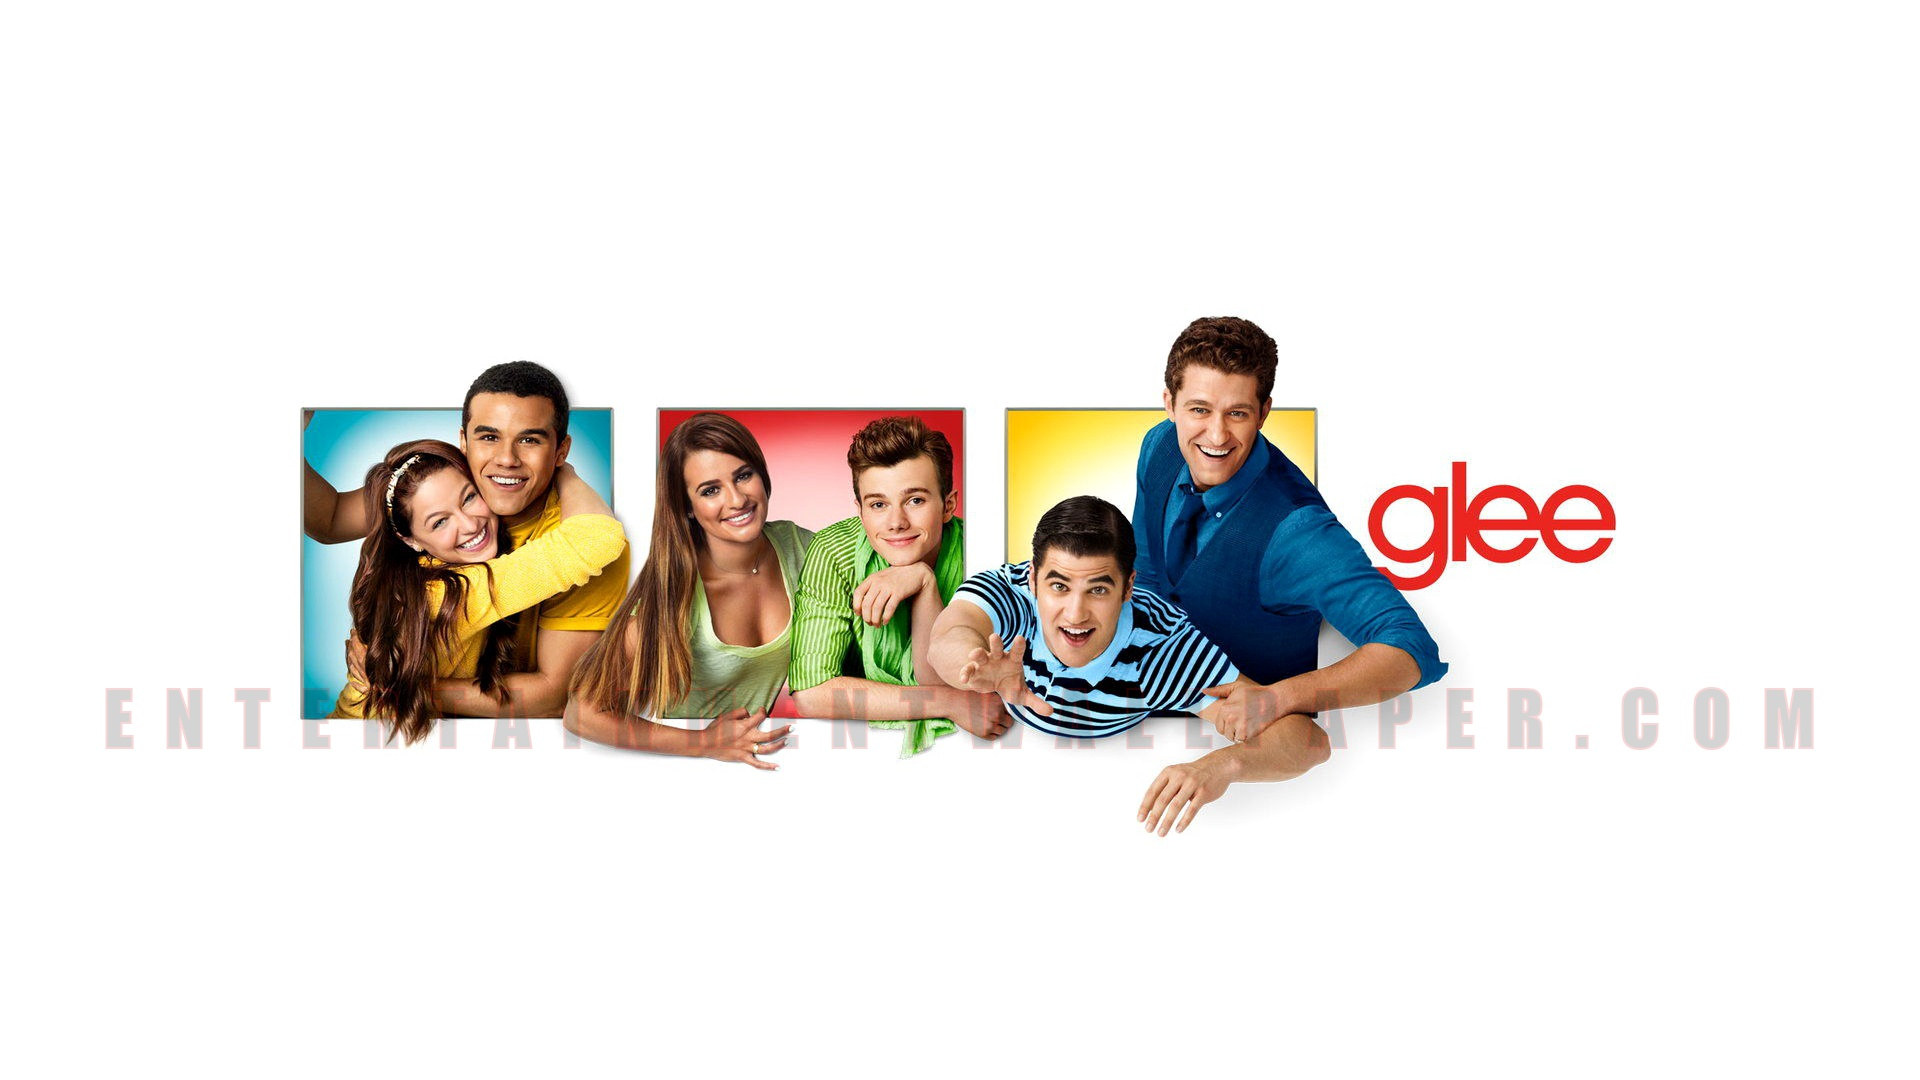 tv show glee wallpaper 20042422 size 1920x1080 more glee wallpaper 1920x1080